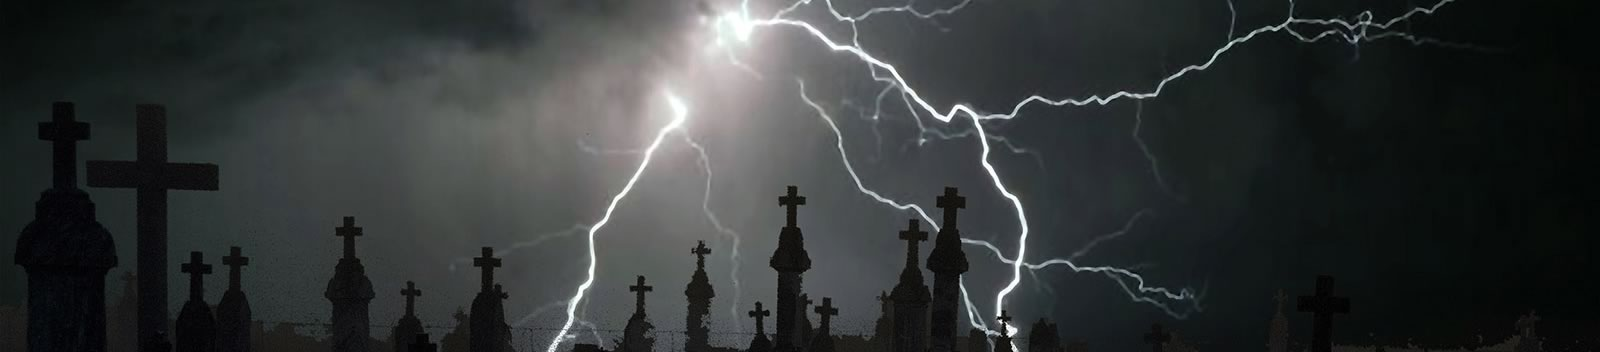 Professional photograph of lightning striking in a cemetery.